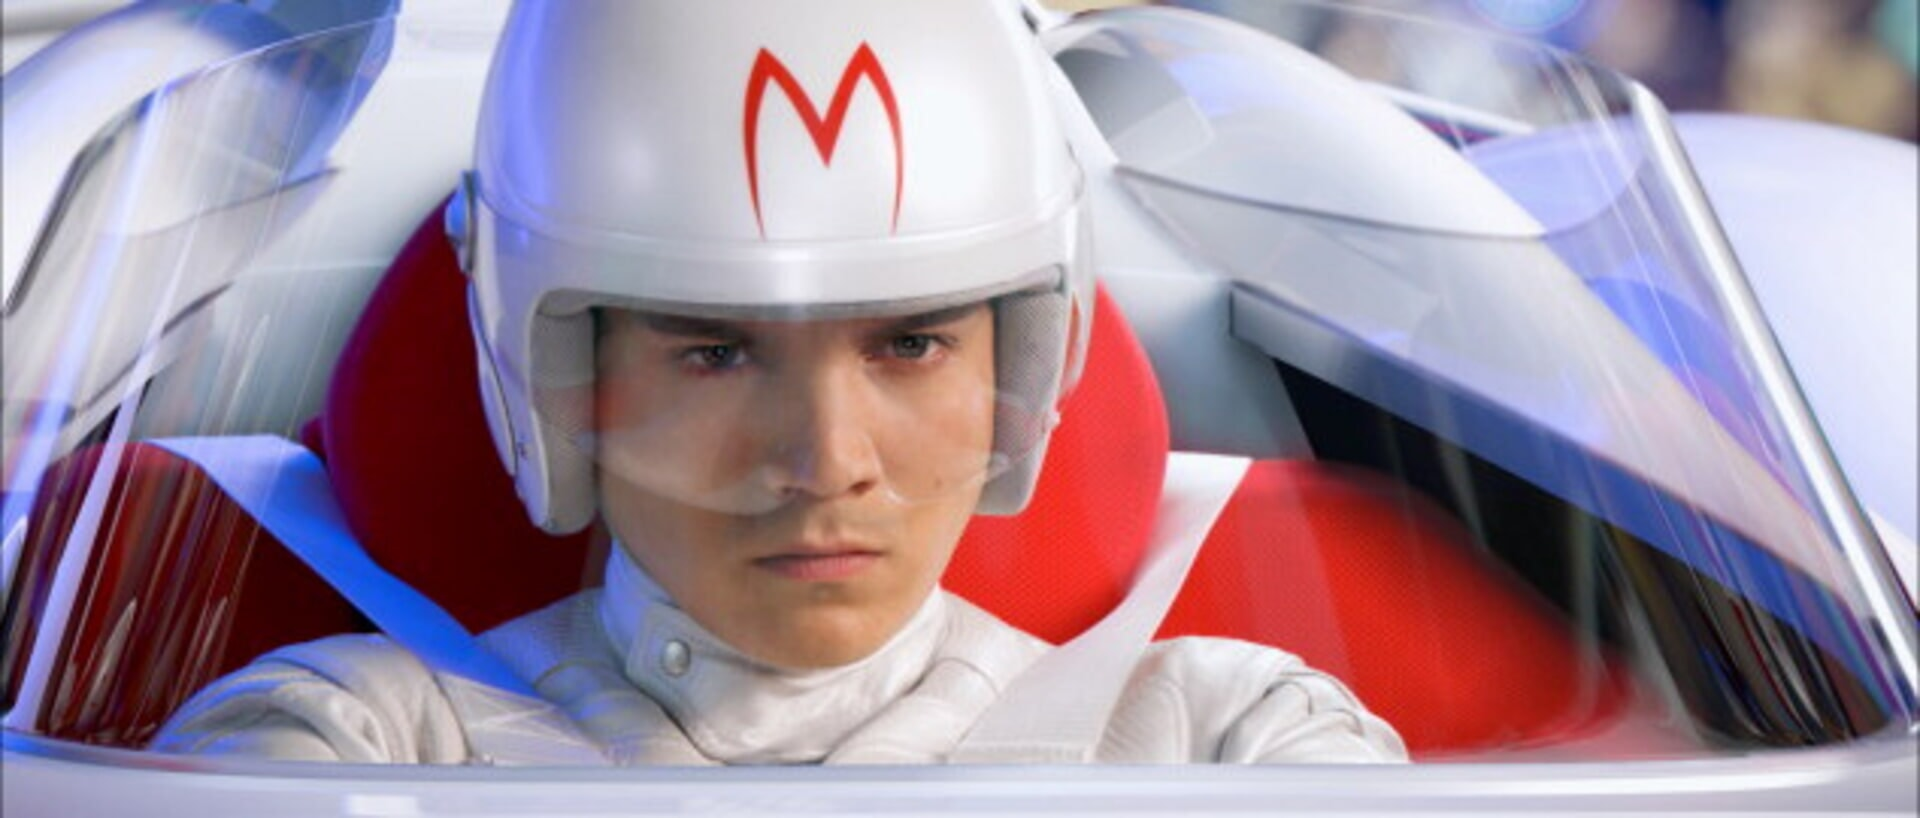 Speed Racer - Image 5